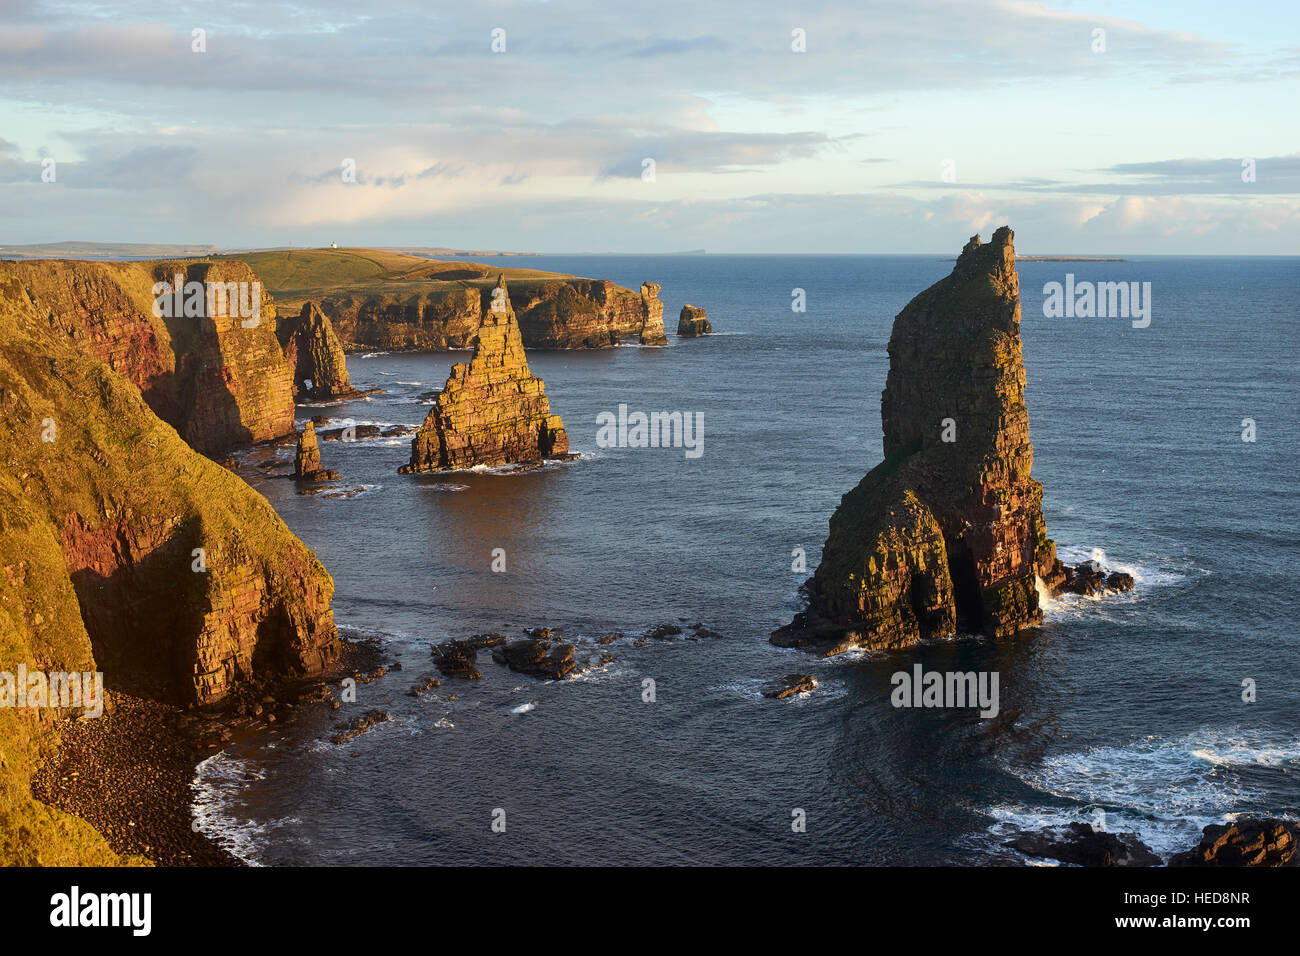 Stacks of Duncansby, Caithness, Scotland Stock Photo